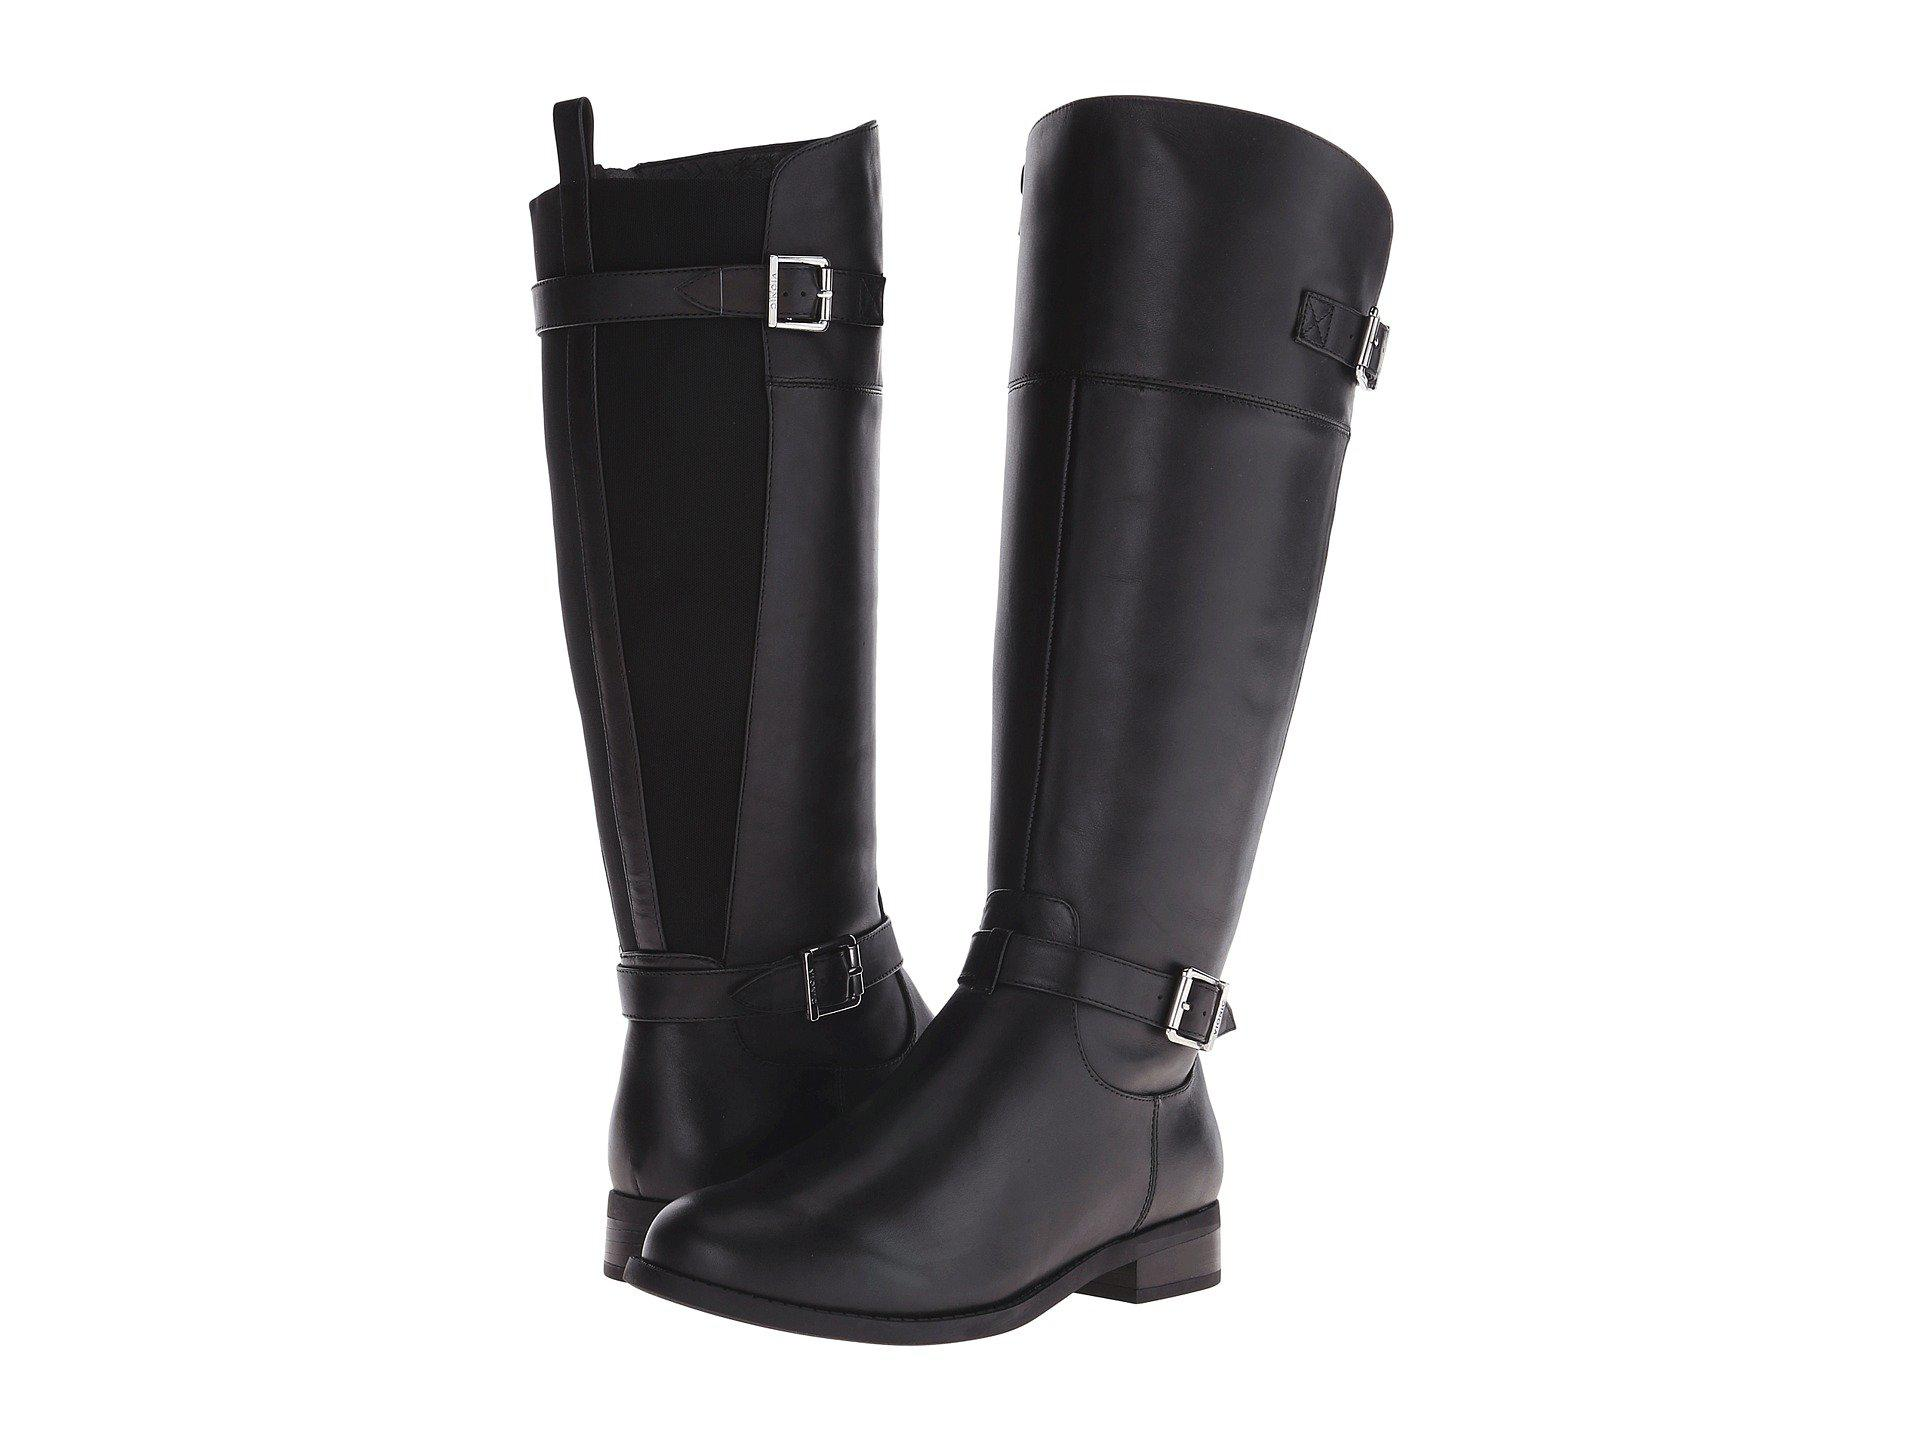 b79f3846c9b Lyst - Vionic Country Storey Tall Boot in Black